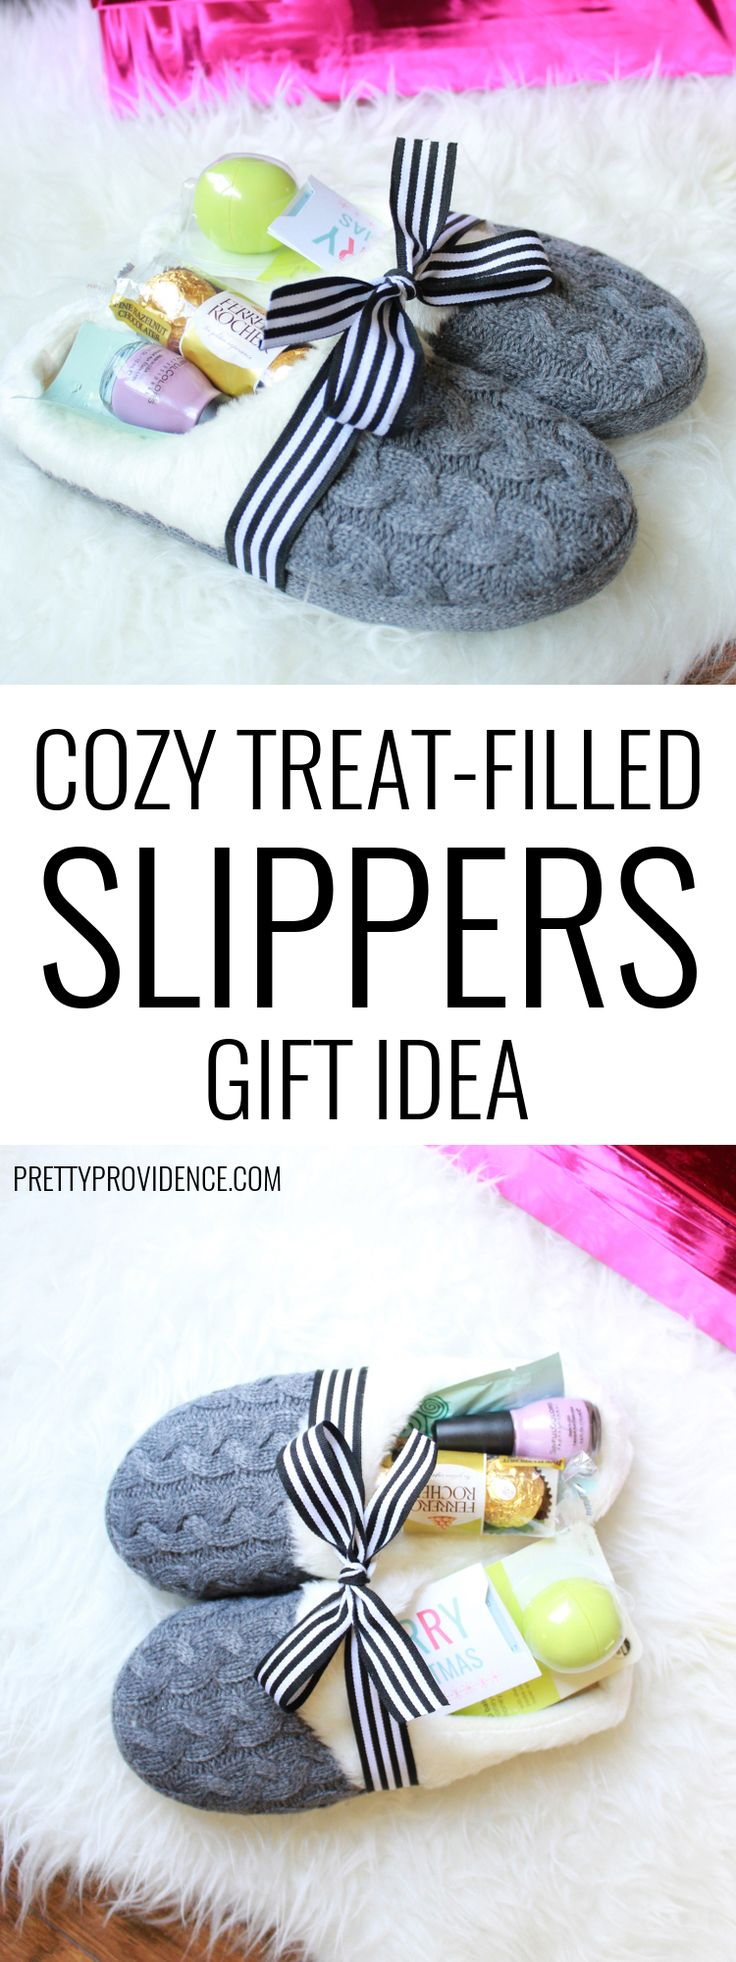 Homemade Christmas Gift Ideas For Mom From Daughter Part - 46: Slippers Gift Idea. Christmas Present Ideas For MomChristmas ...